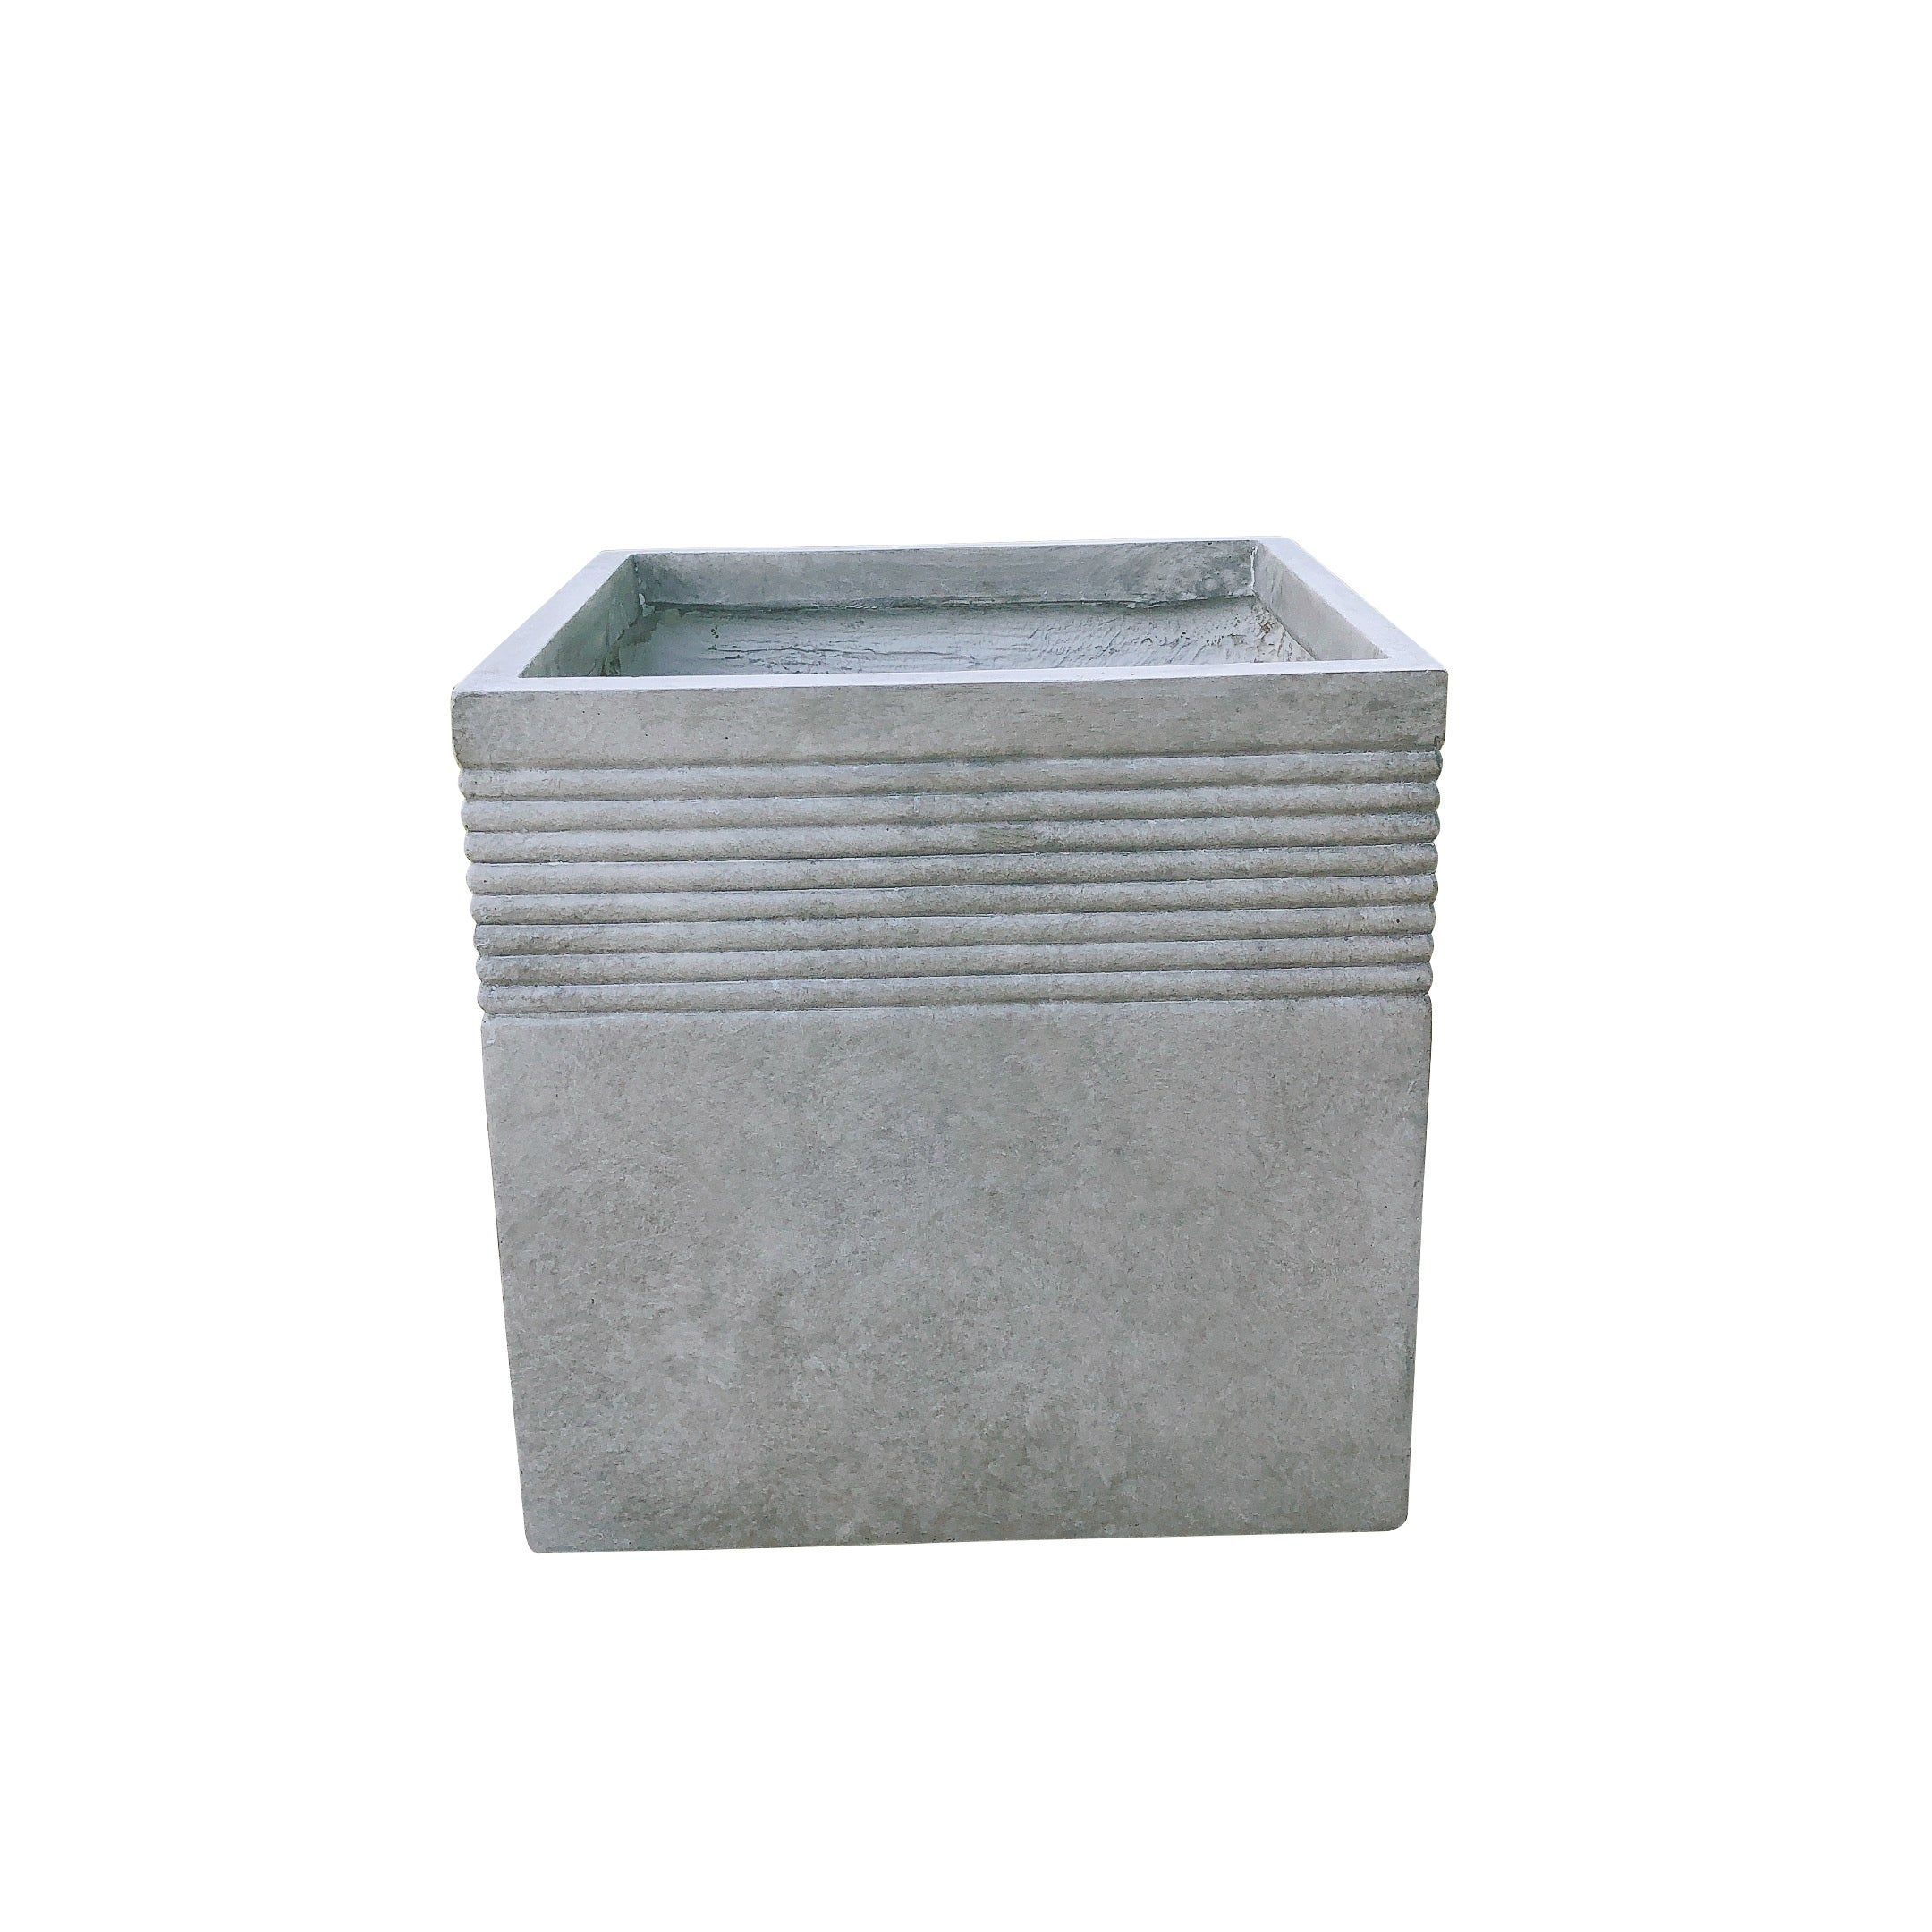 Kante Lightweight Modern Square Outdoor Planter Large 17 7 Inch Tall Natural Concrete Overstock 30694428